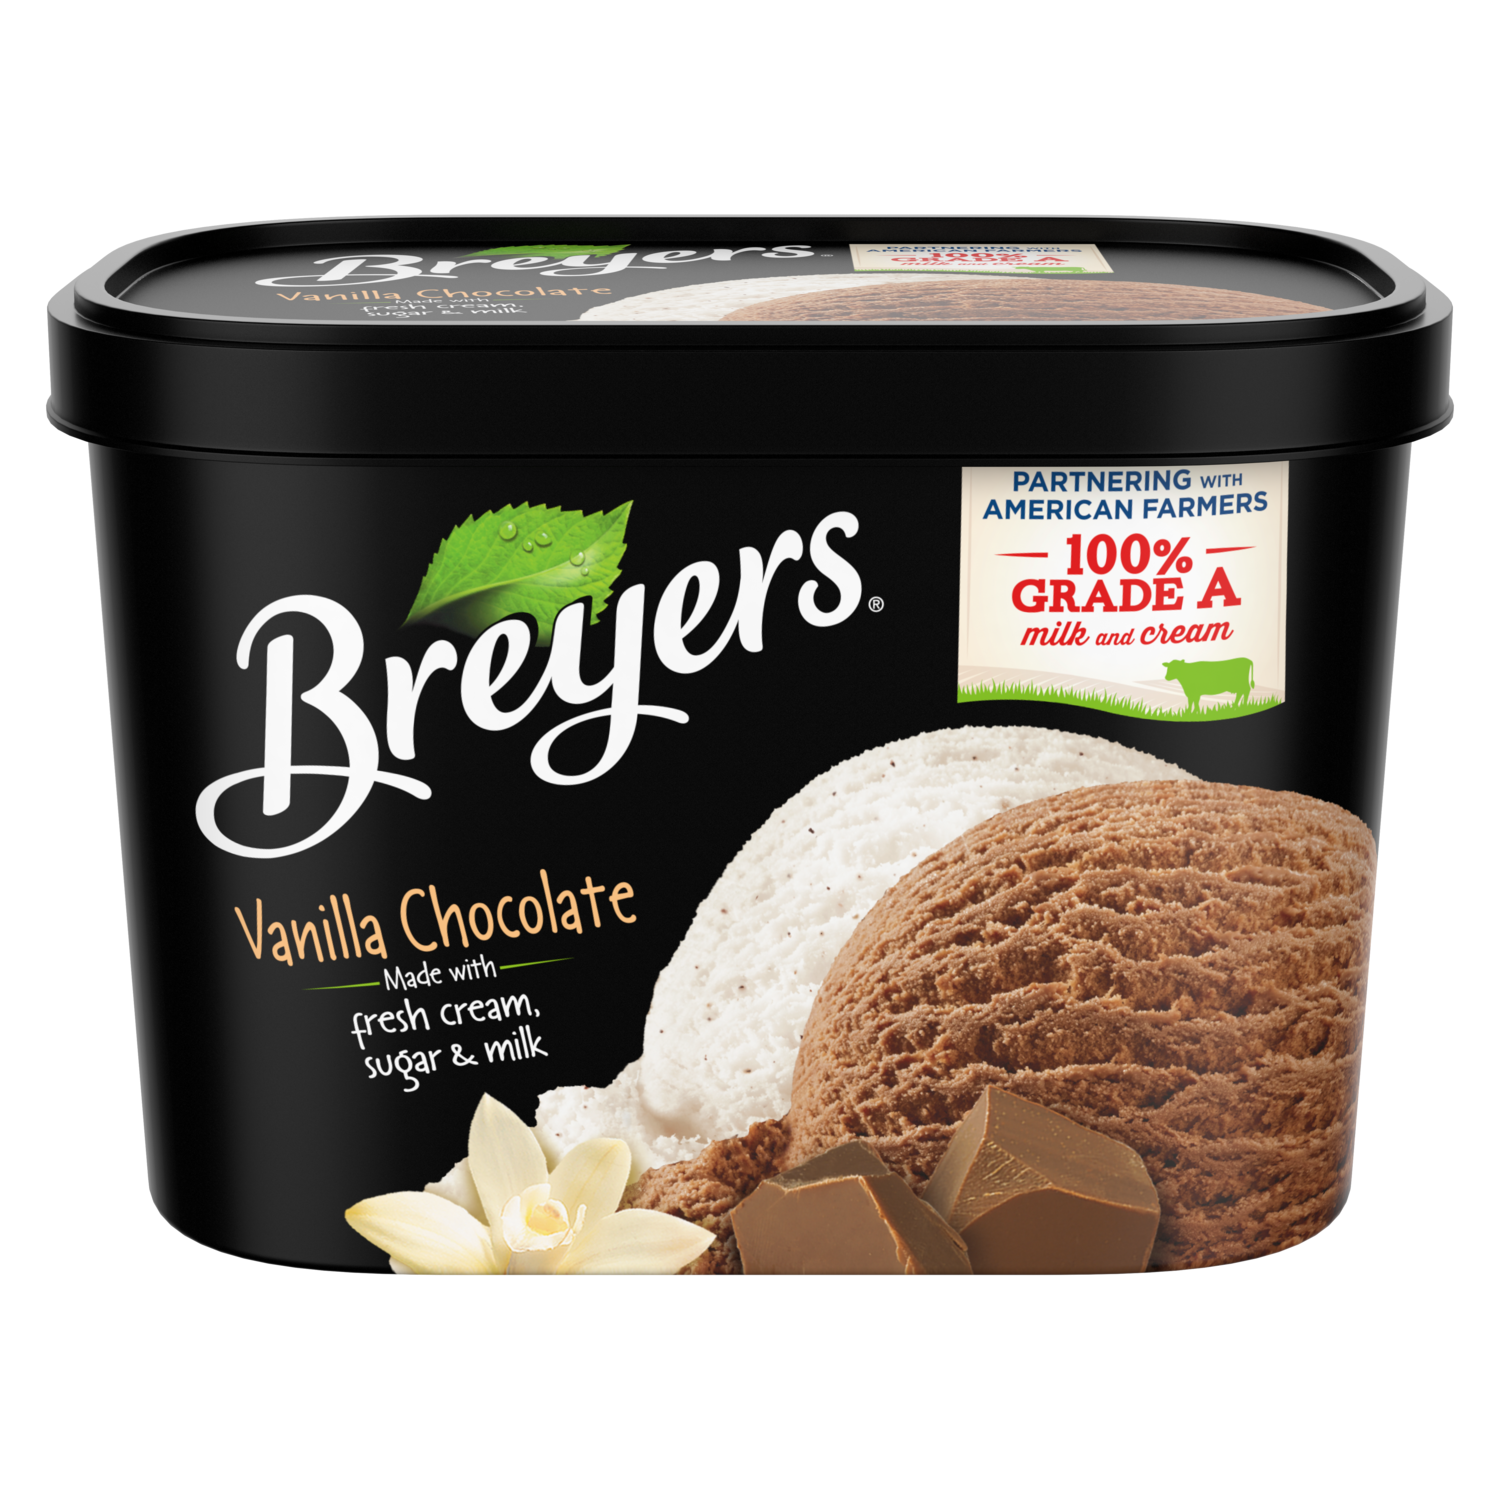 A 48 ounce tub of Breyers Vanilla Chocolate front of pack